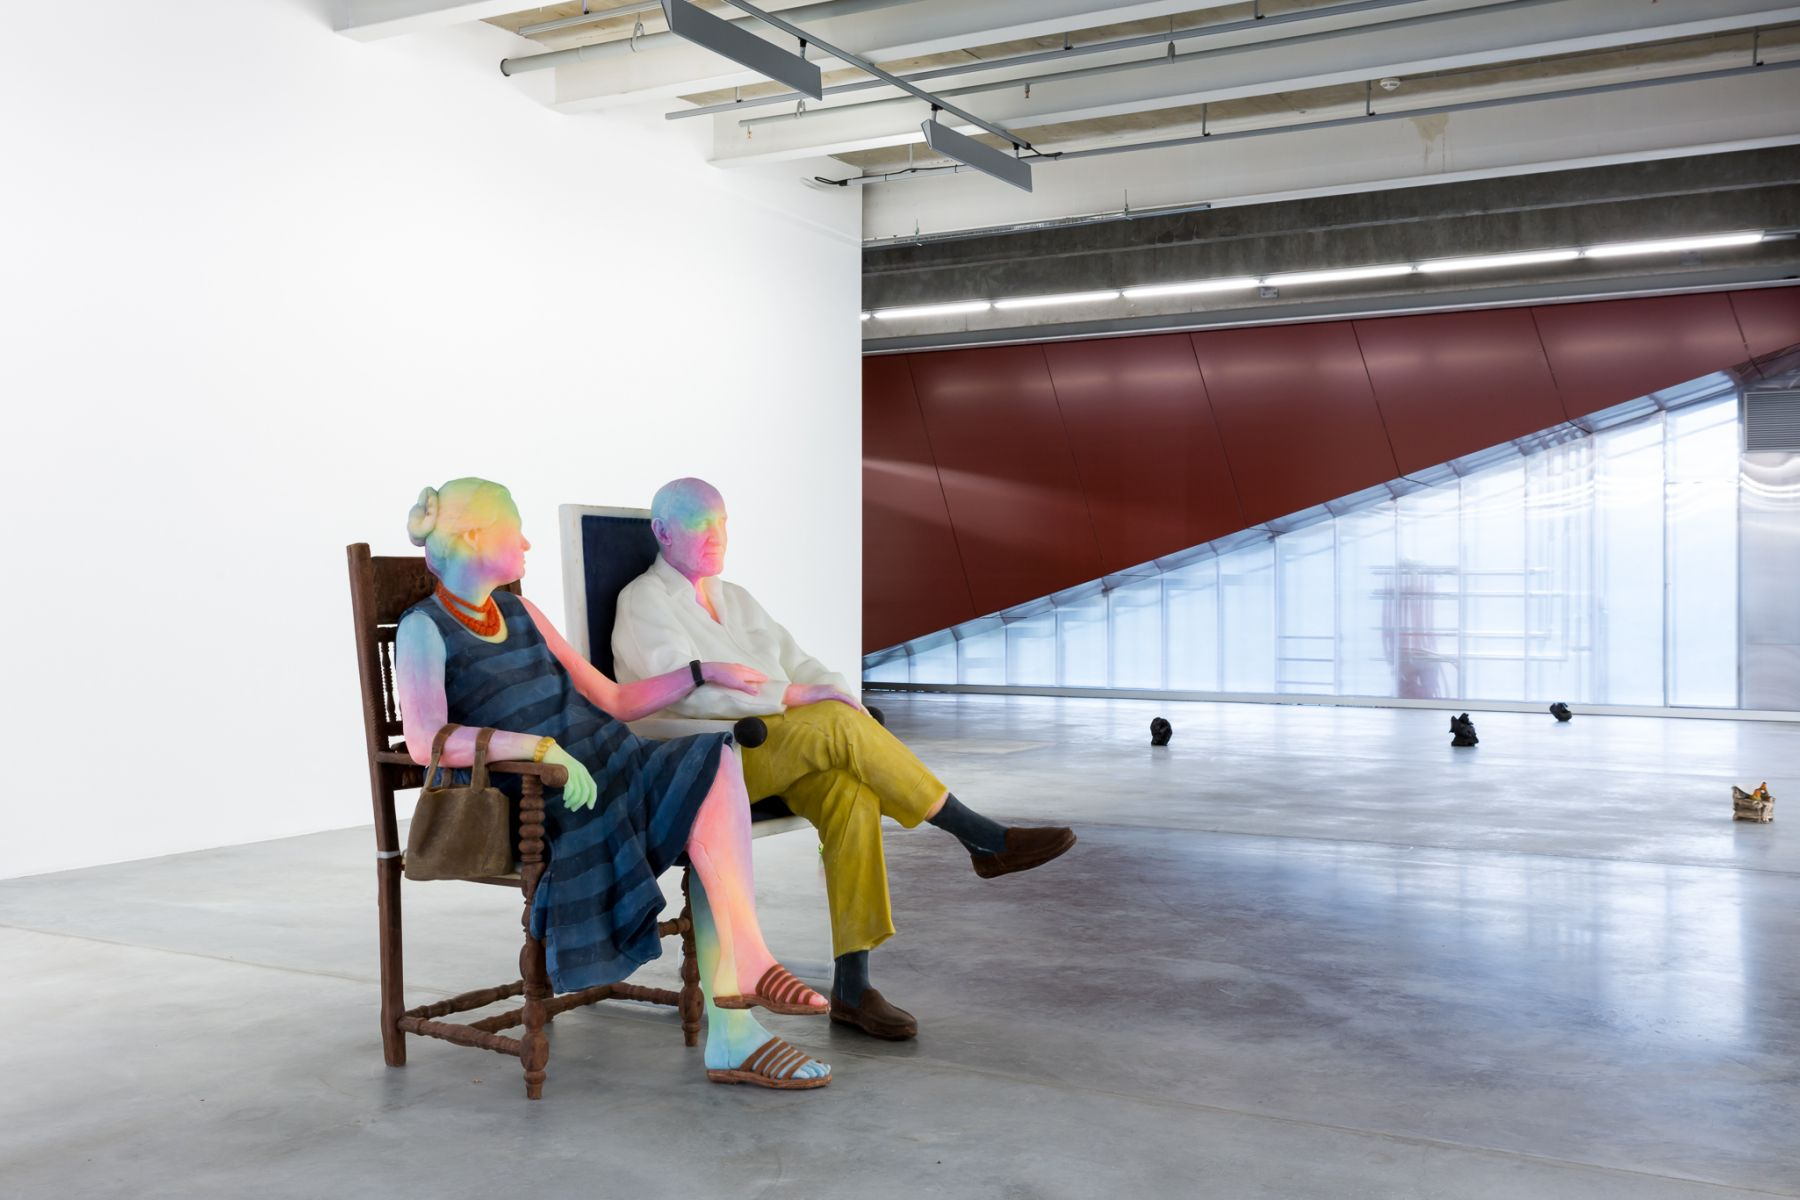 Installation view, Urs Fischer,Small Axe, Garage Museum of Contemporary Art, Moscow, Russia, 2016